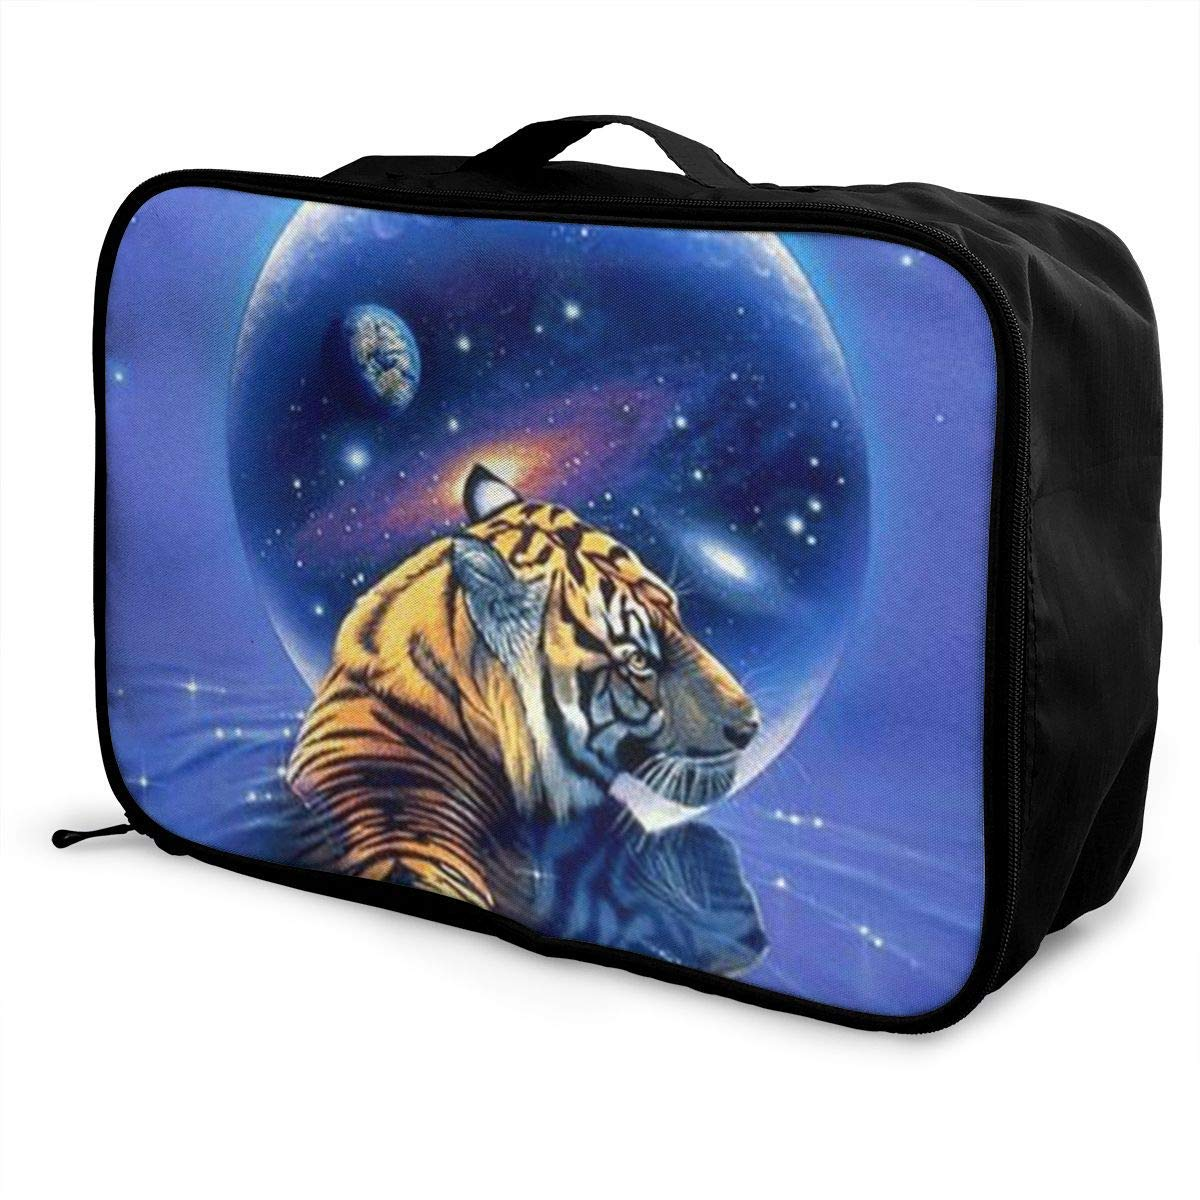 Portable Luggage Duffel Bag Space Tiger Travel Bags Carry-on In Trolley Handle